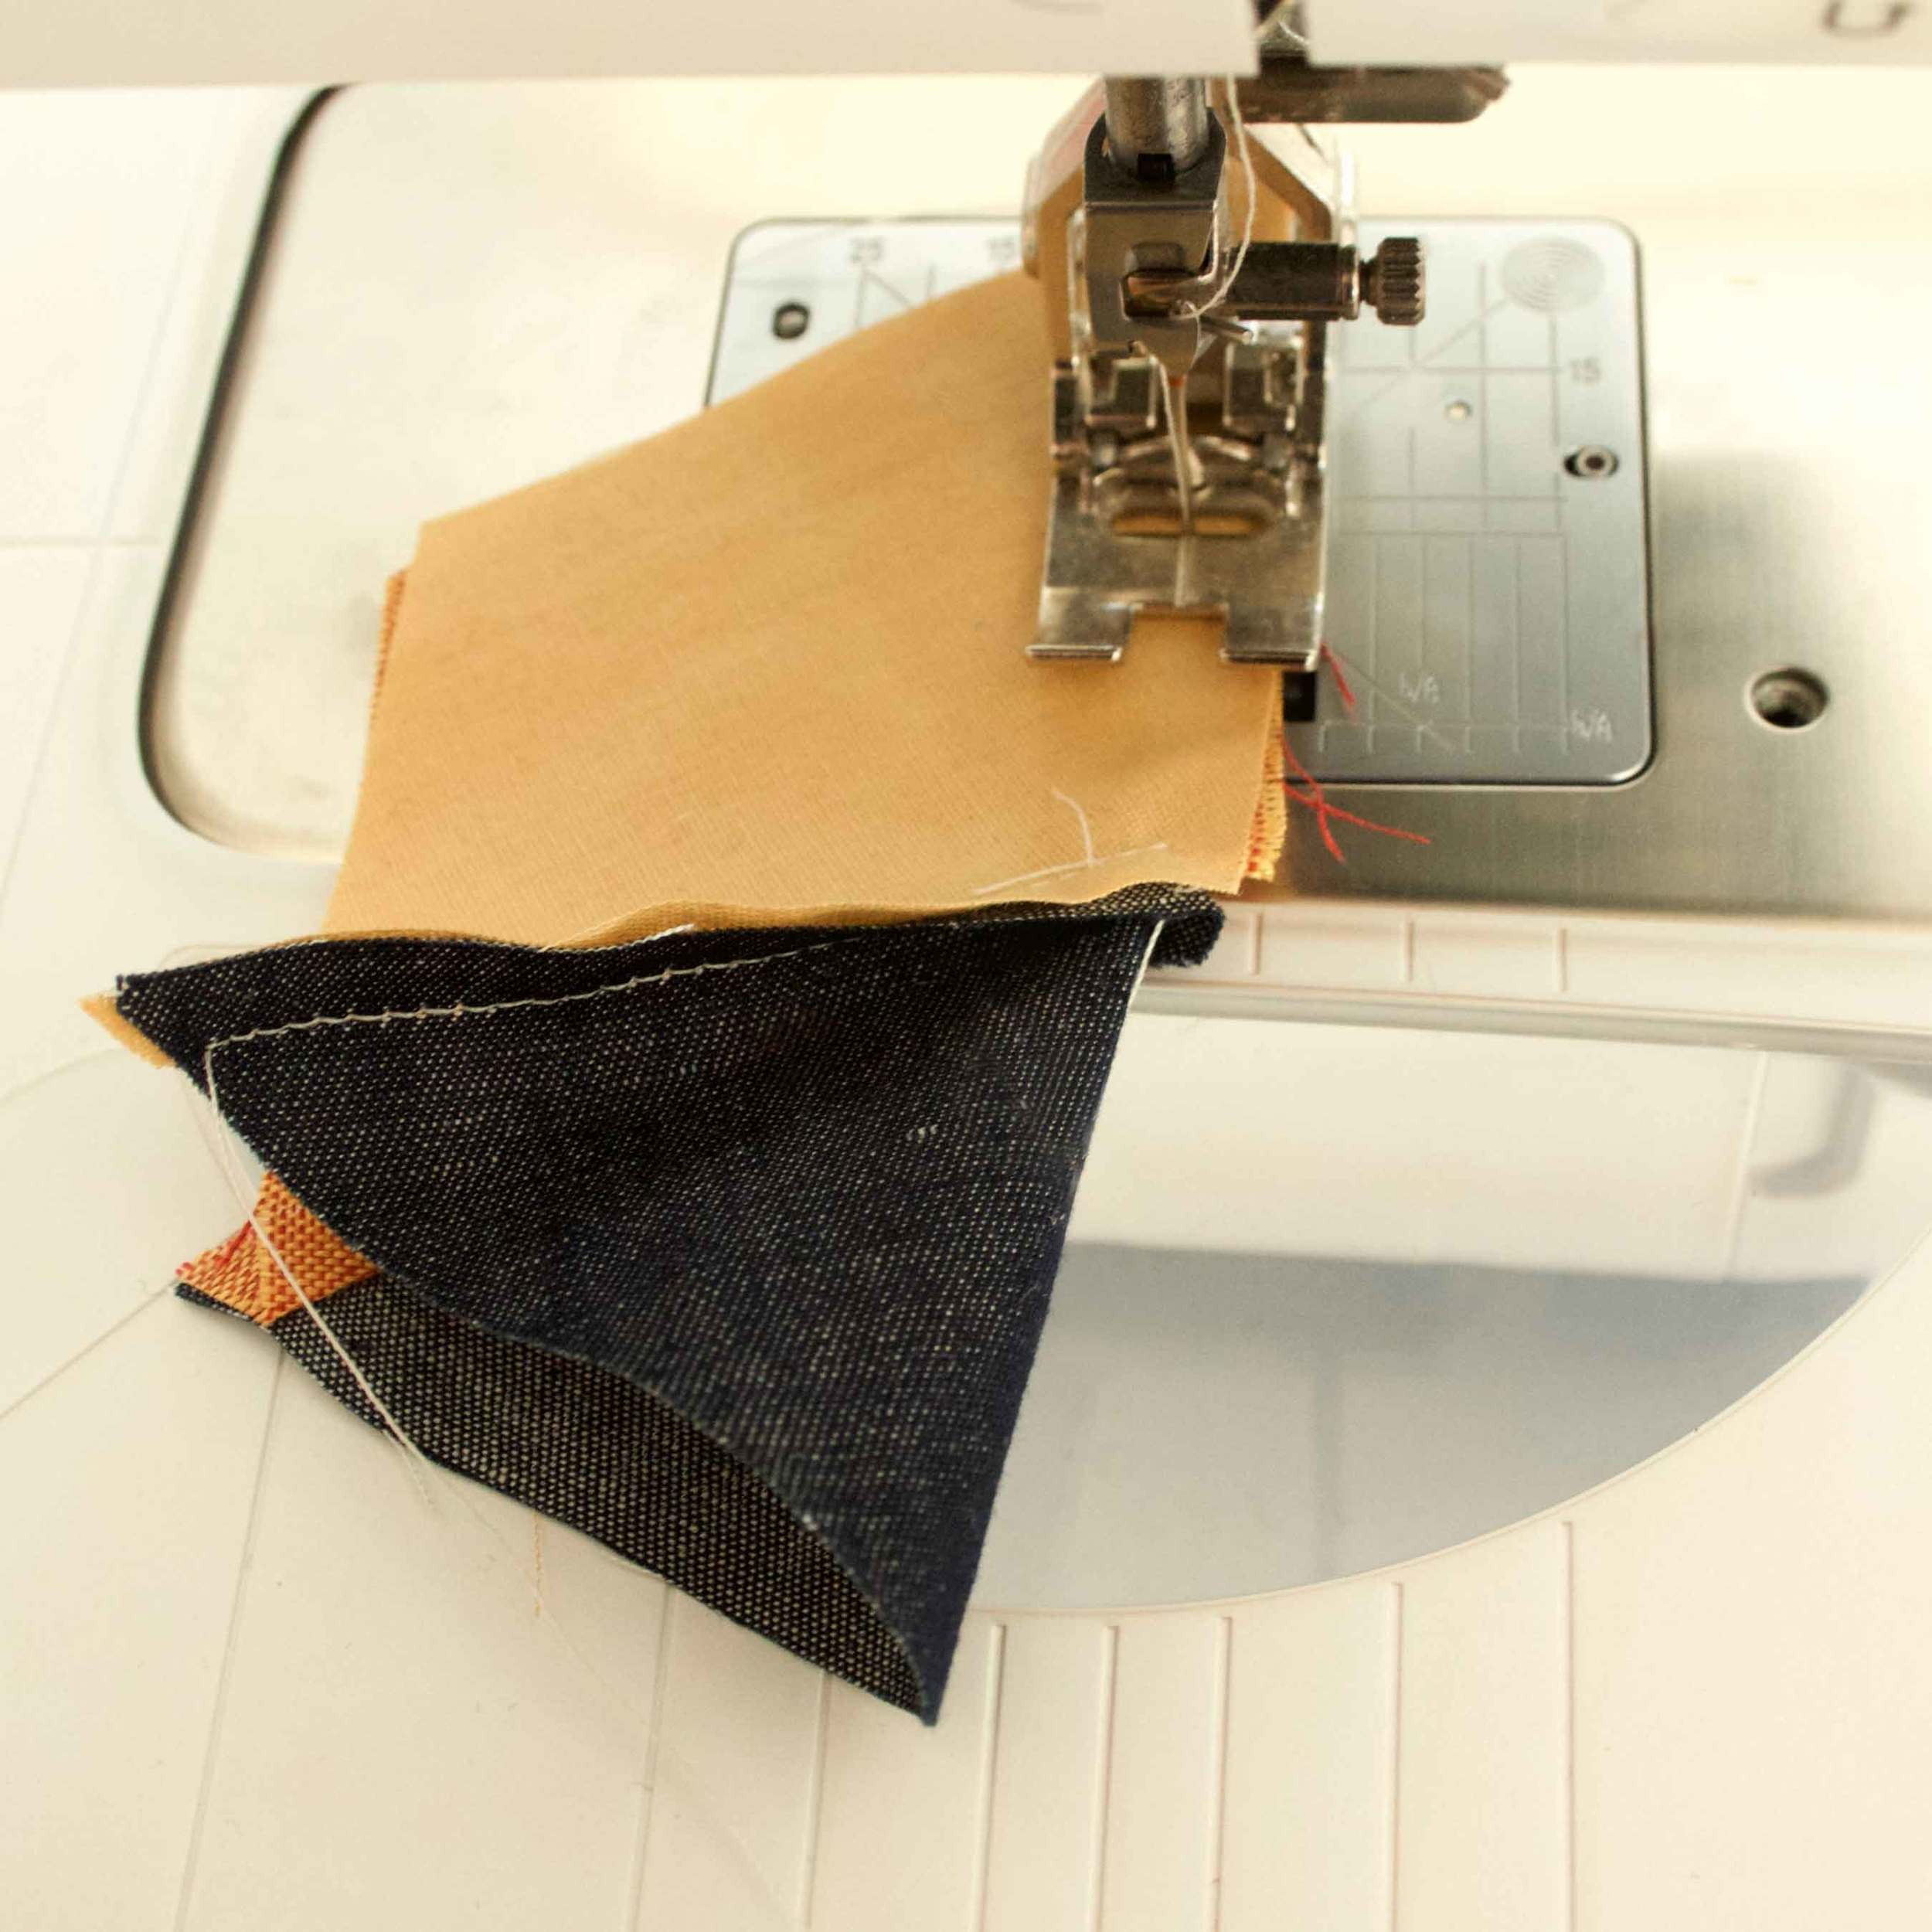 Sewing pieces for a quilted coaster, tutorial by Thread & Whisk